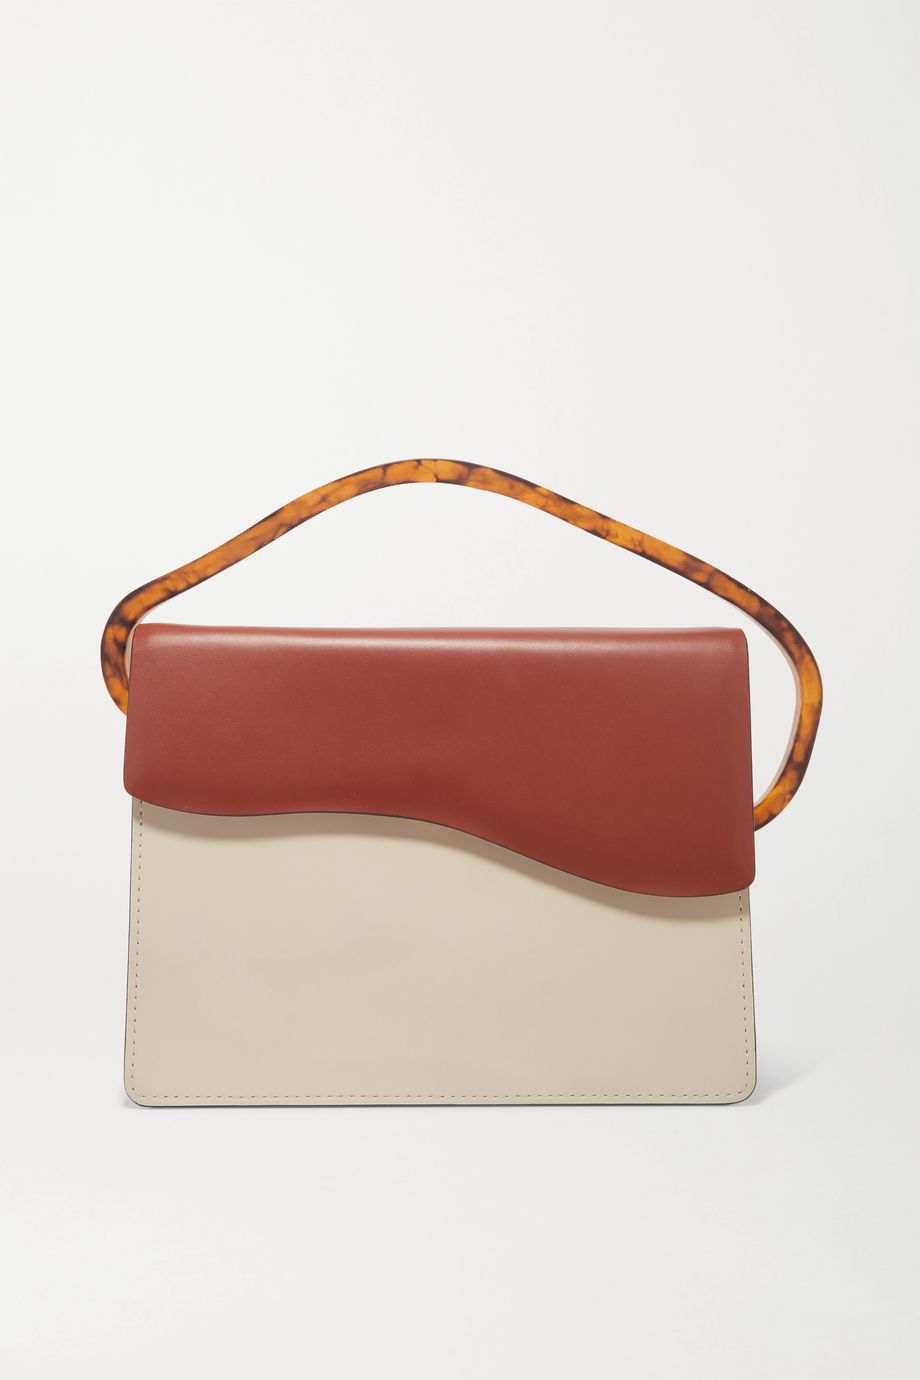 Naturae Sacra Aiges two-tone leather and resin tote